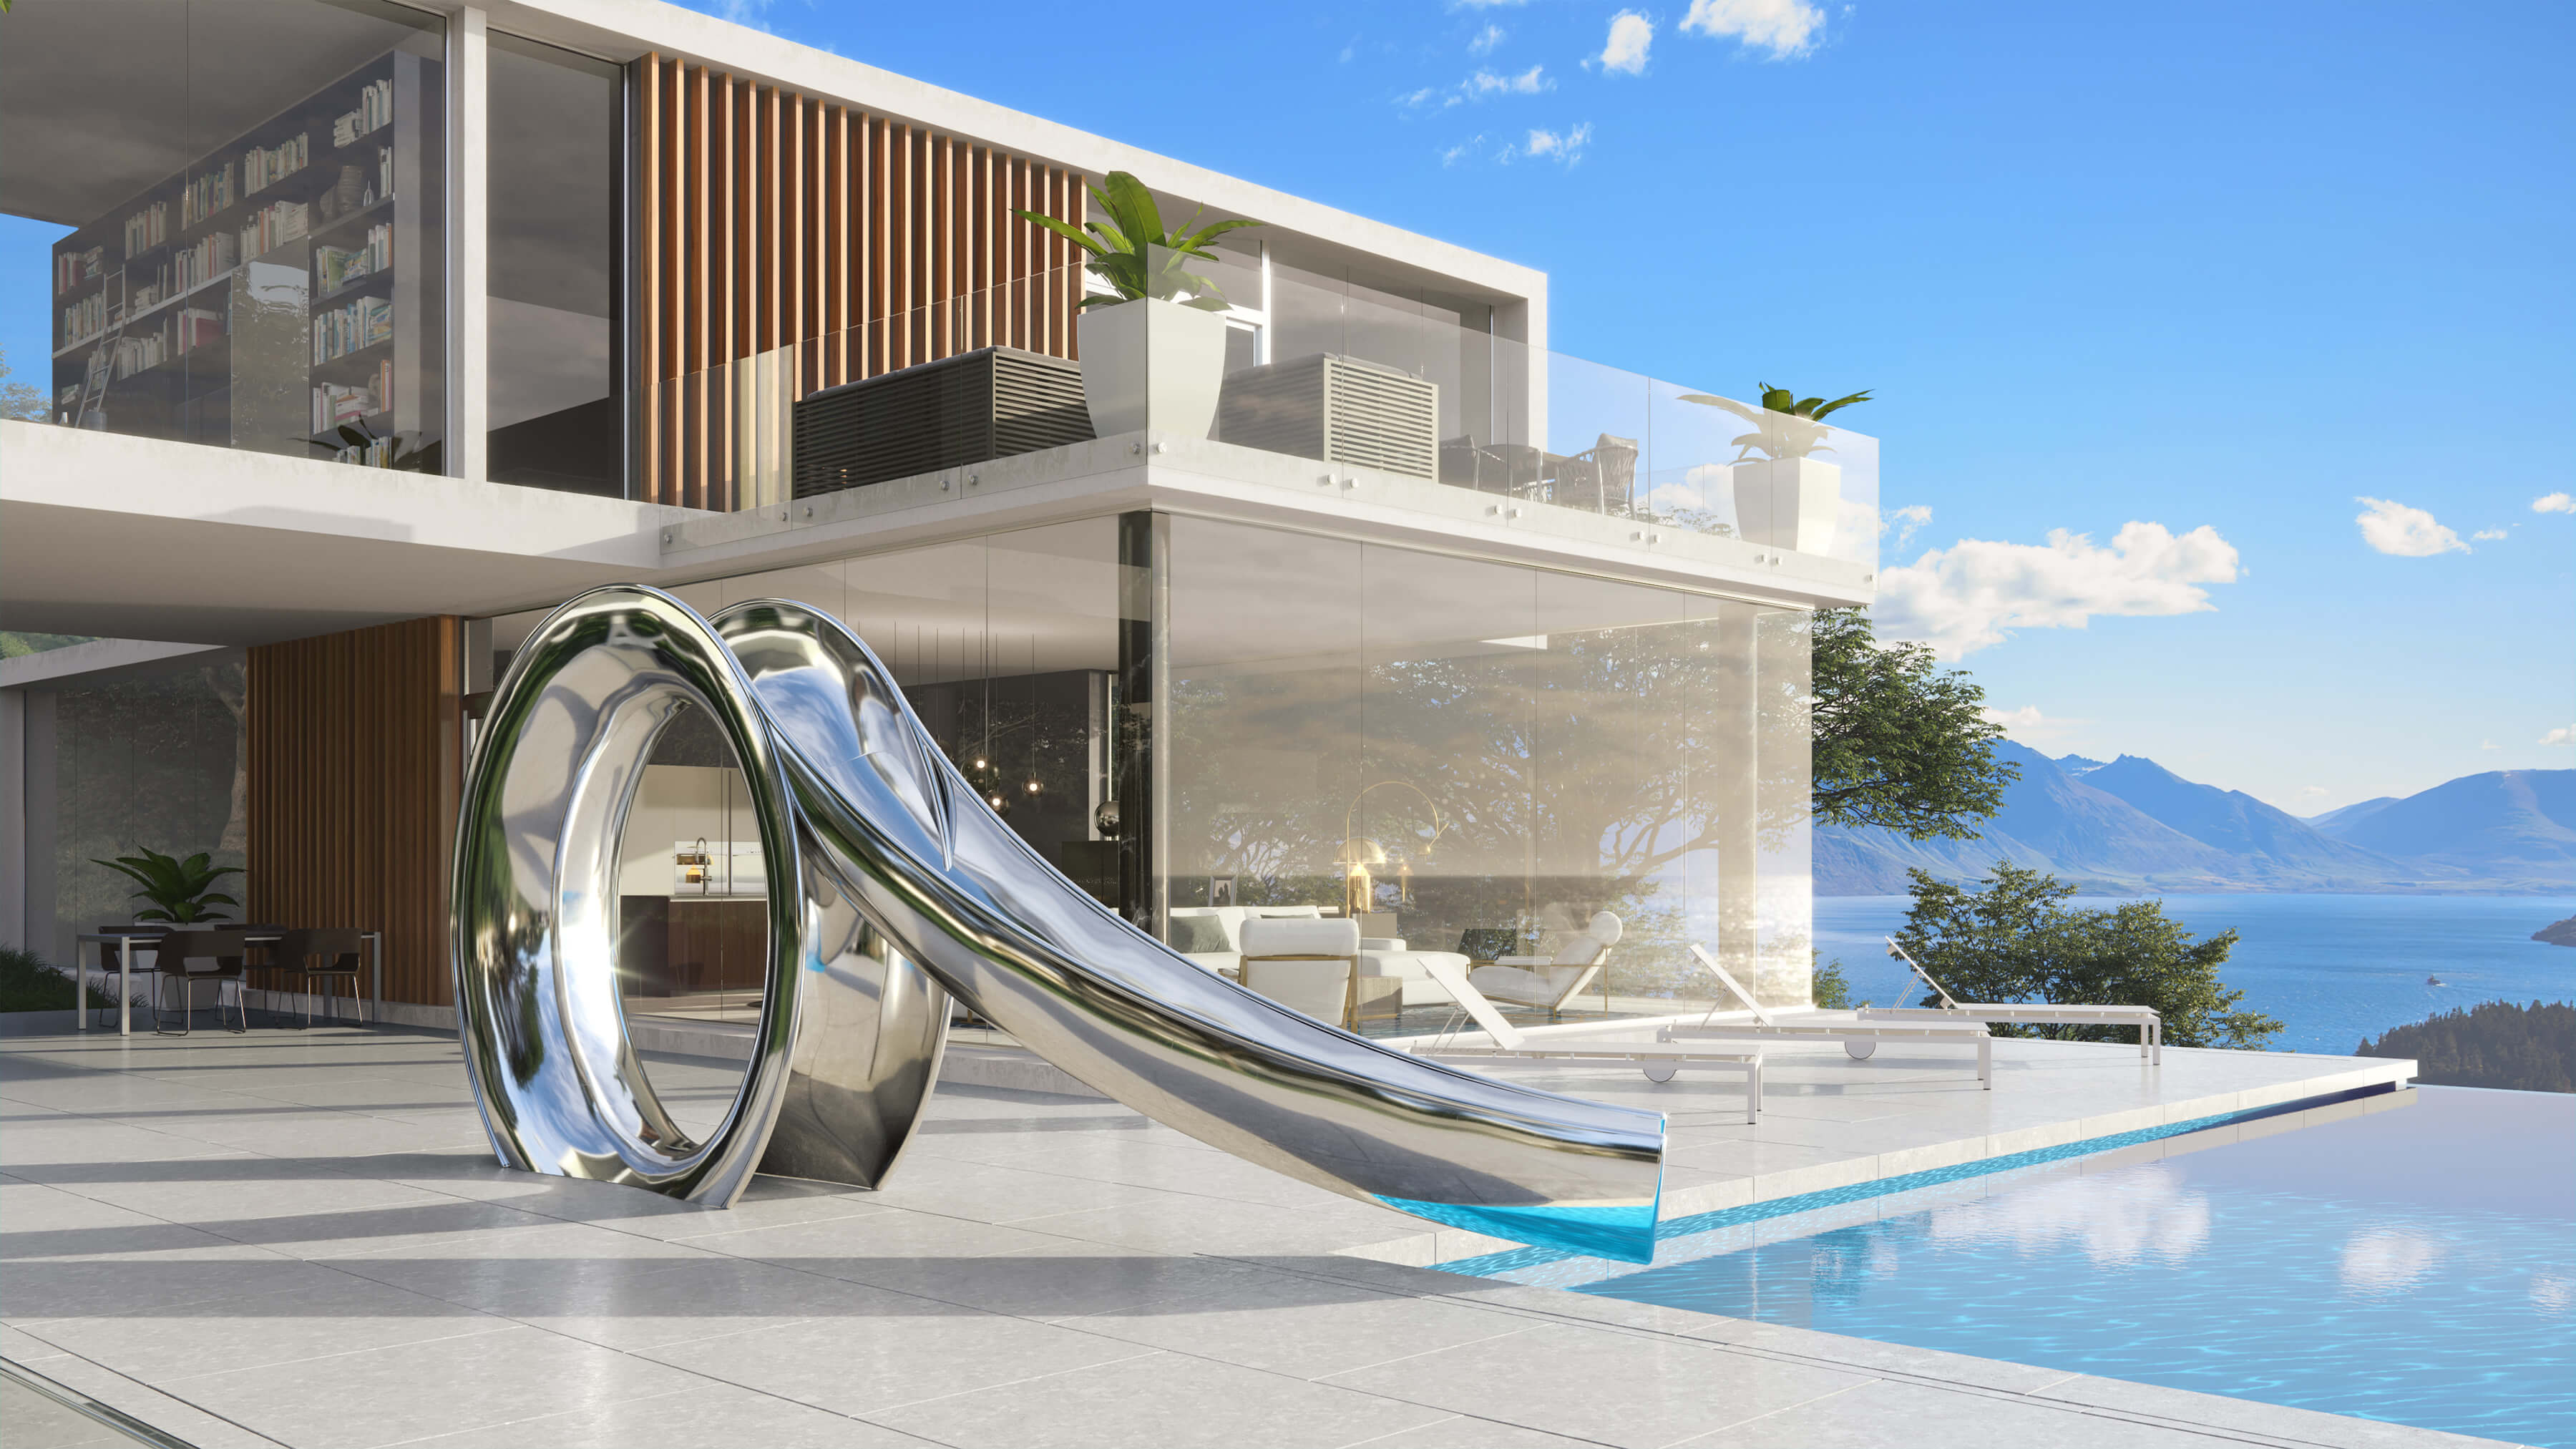 Water slide designed in mirror polished stainless steel by modern house with ocean view.